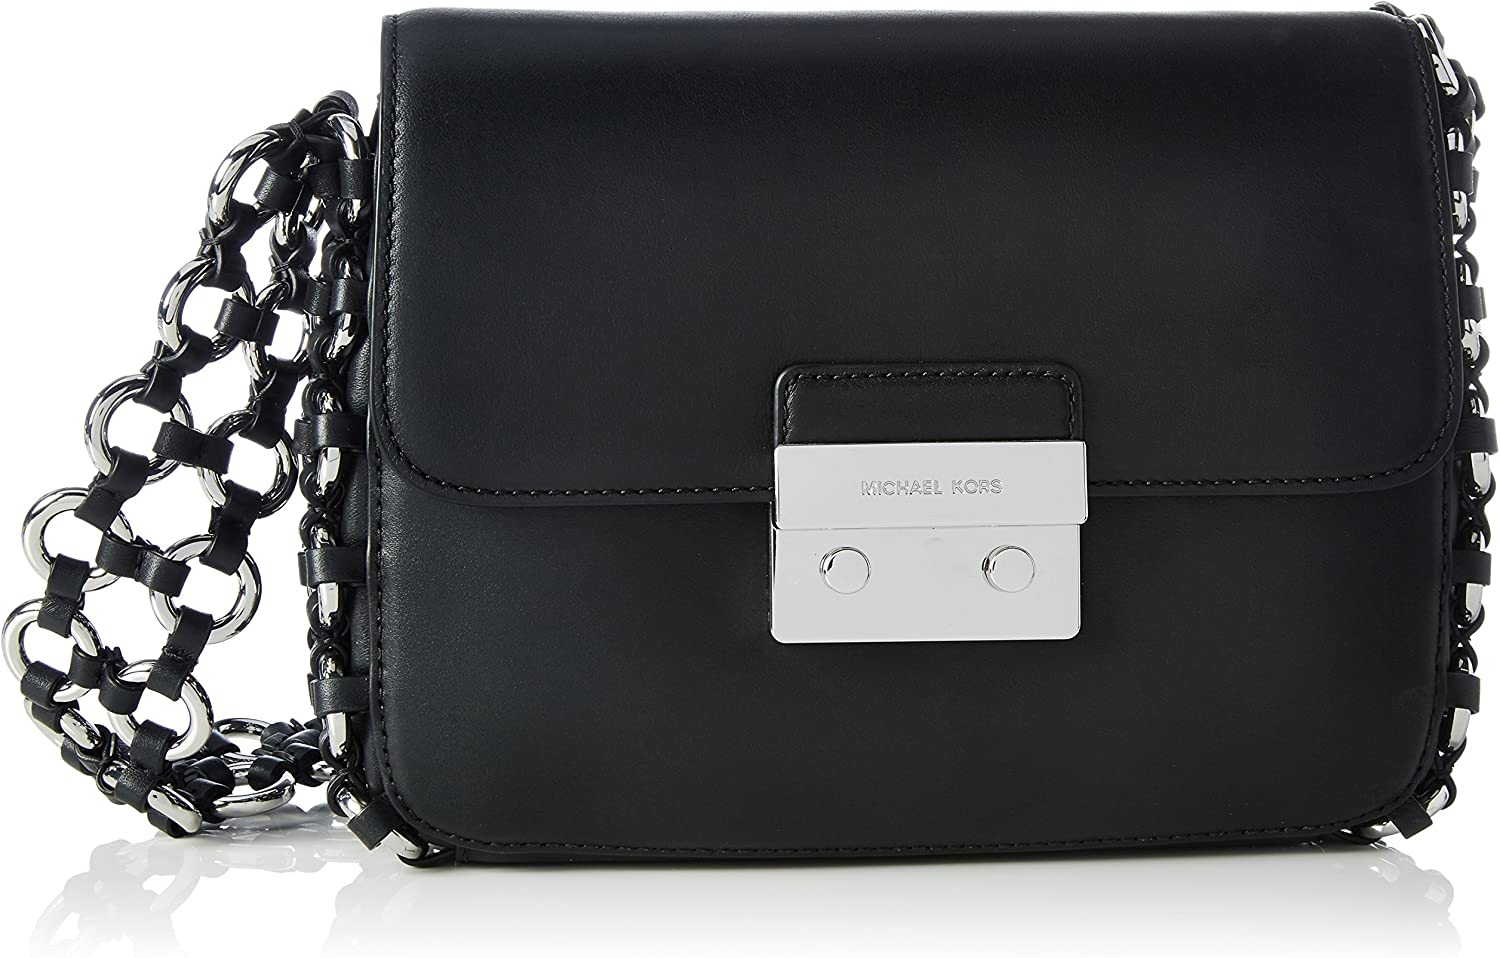 MICHAEL Michael Kors Piper Large Flap Shoulder Bag: Amazon